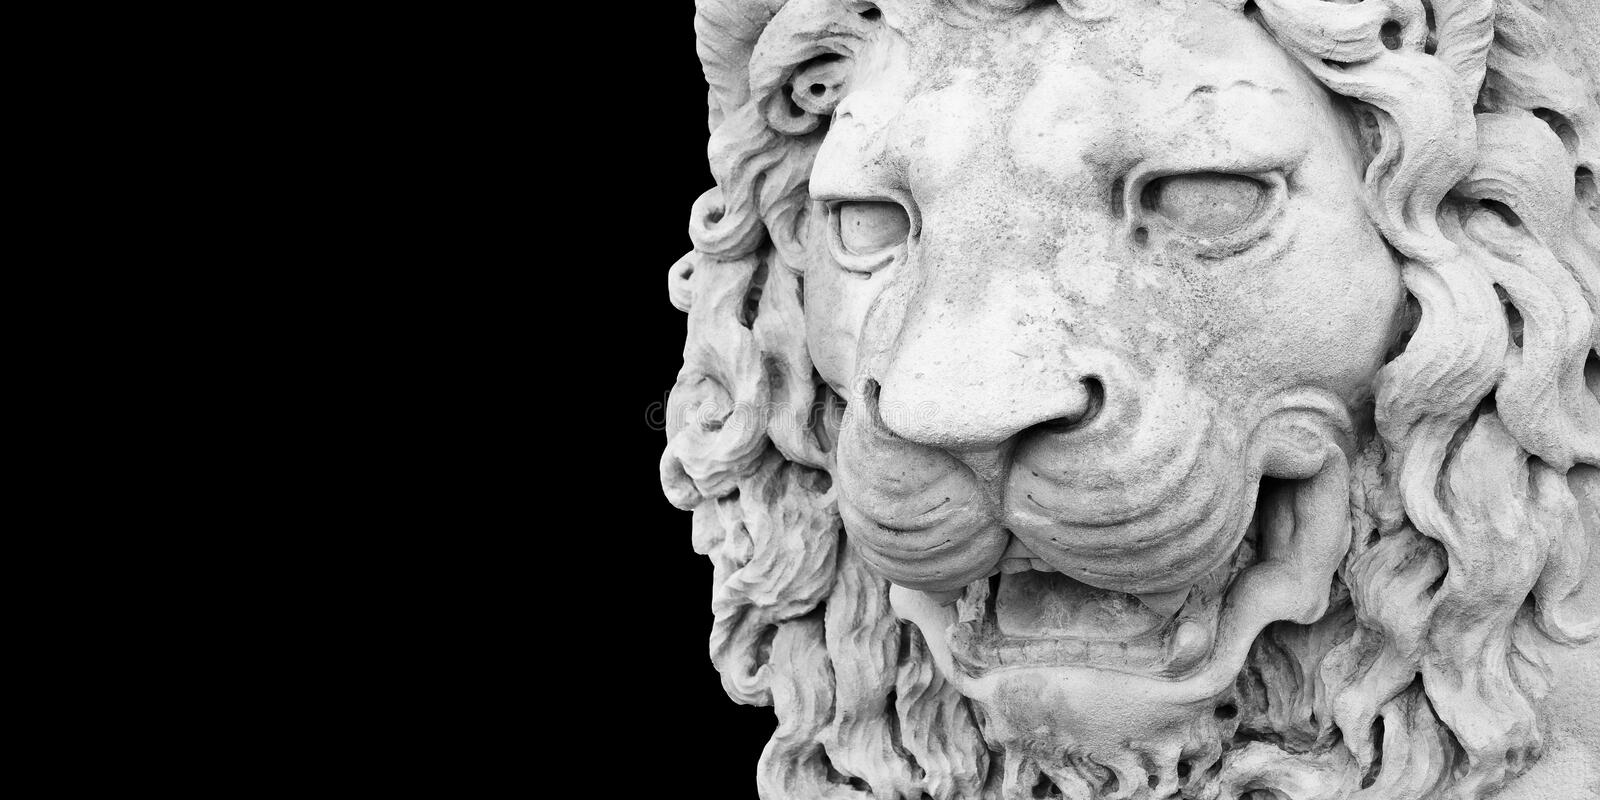 Sculpture of a medieval lion head of stone Italy - Image with copy space isolated on black background for easy selection stock photography